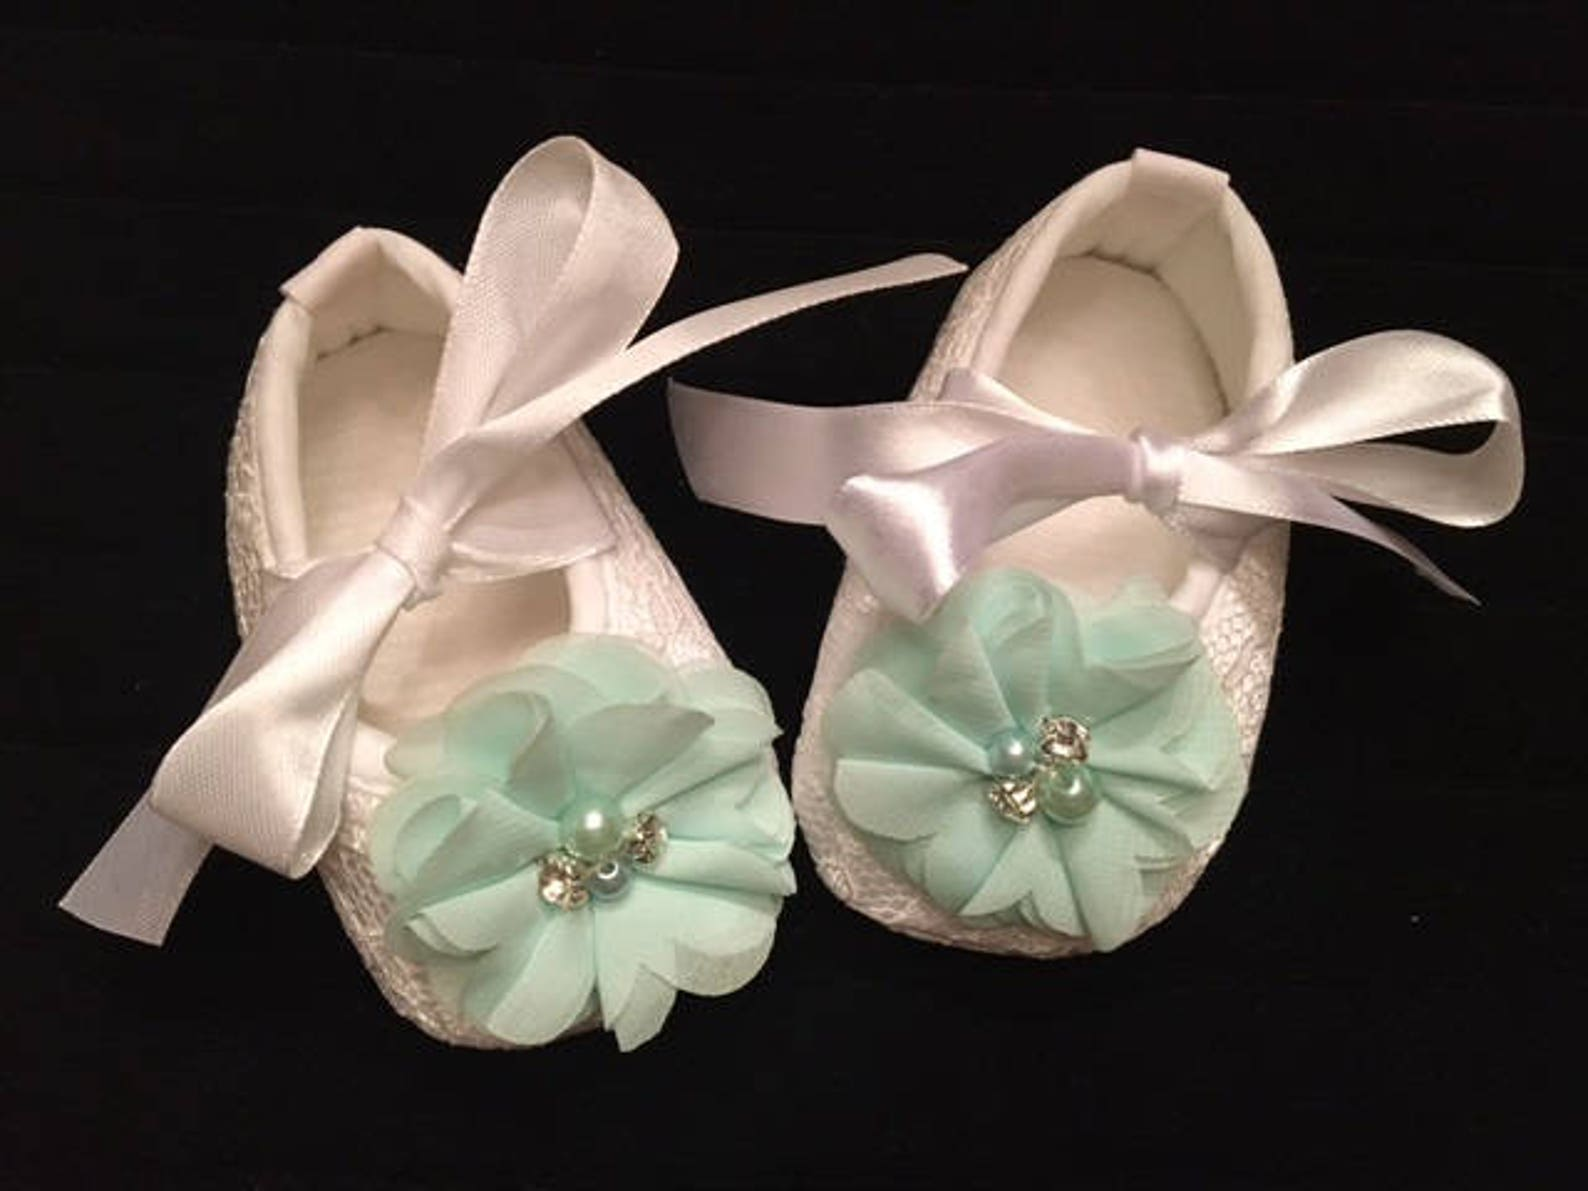 white lace baby shoes with mint green flower - baby flower girl baby shoes - baby dress christmas shoes - baby ballet slippers